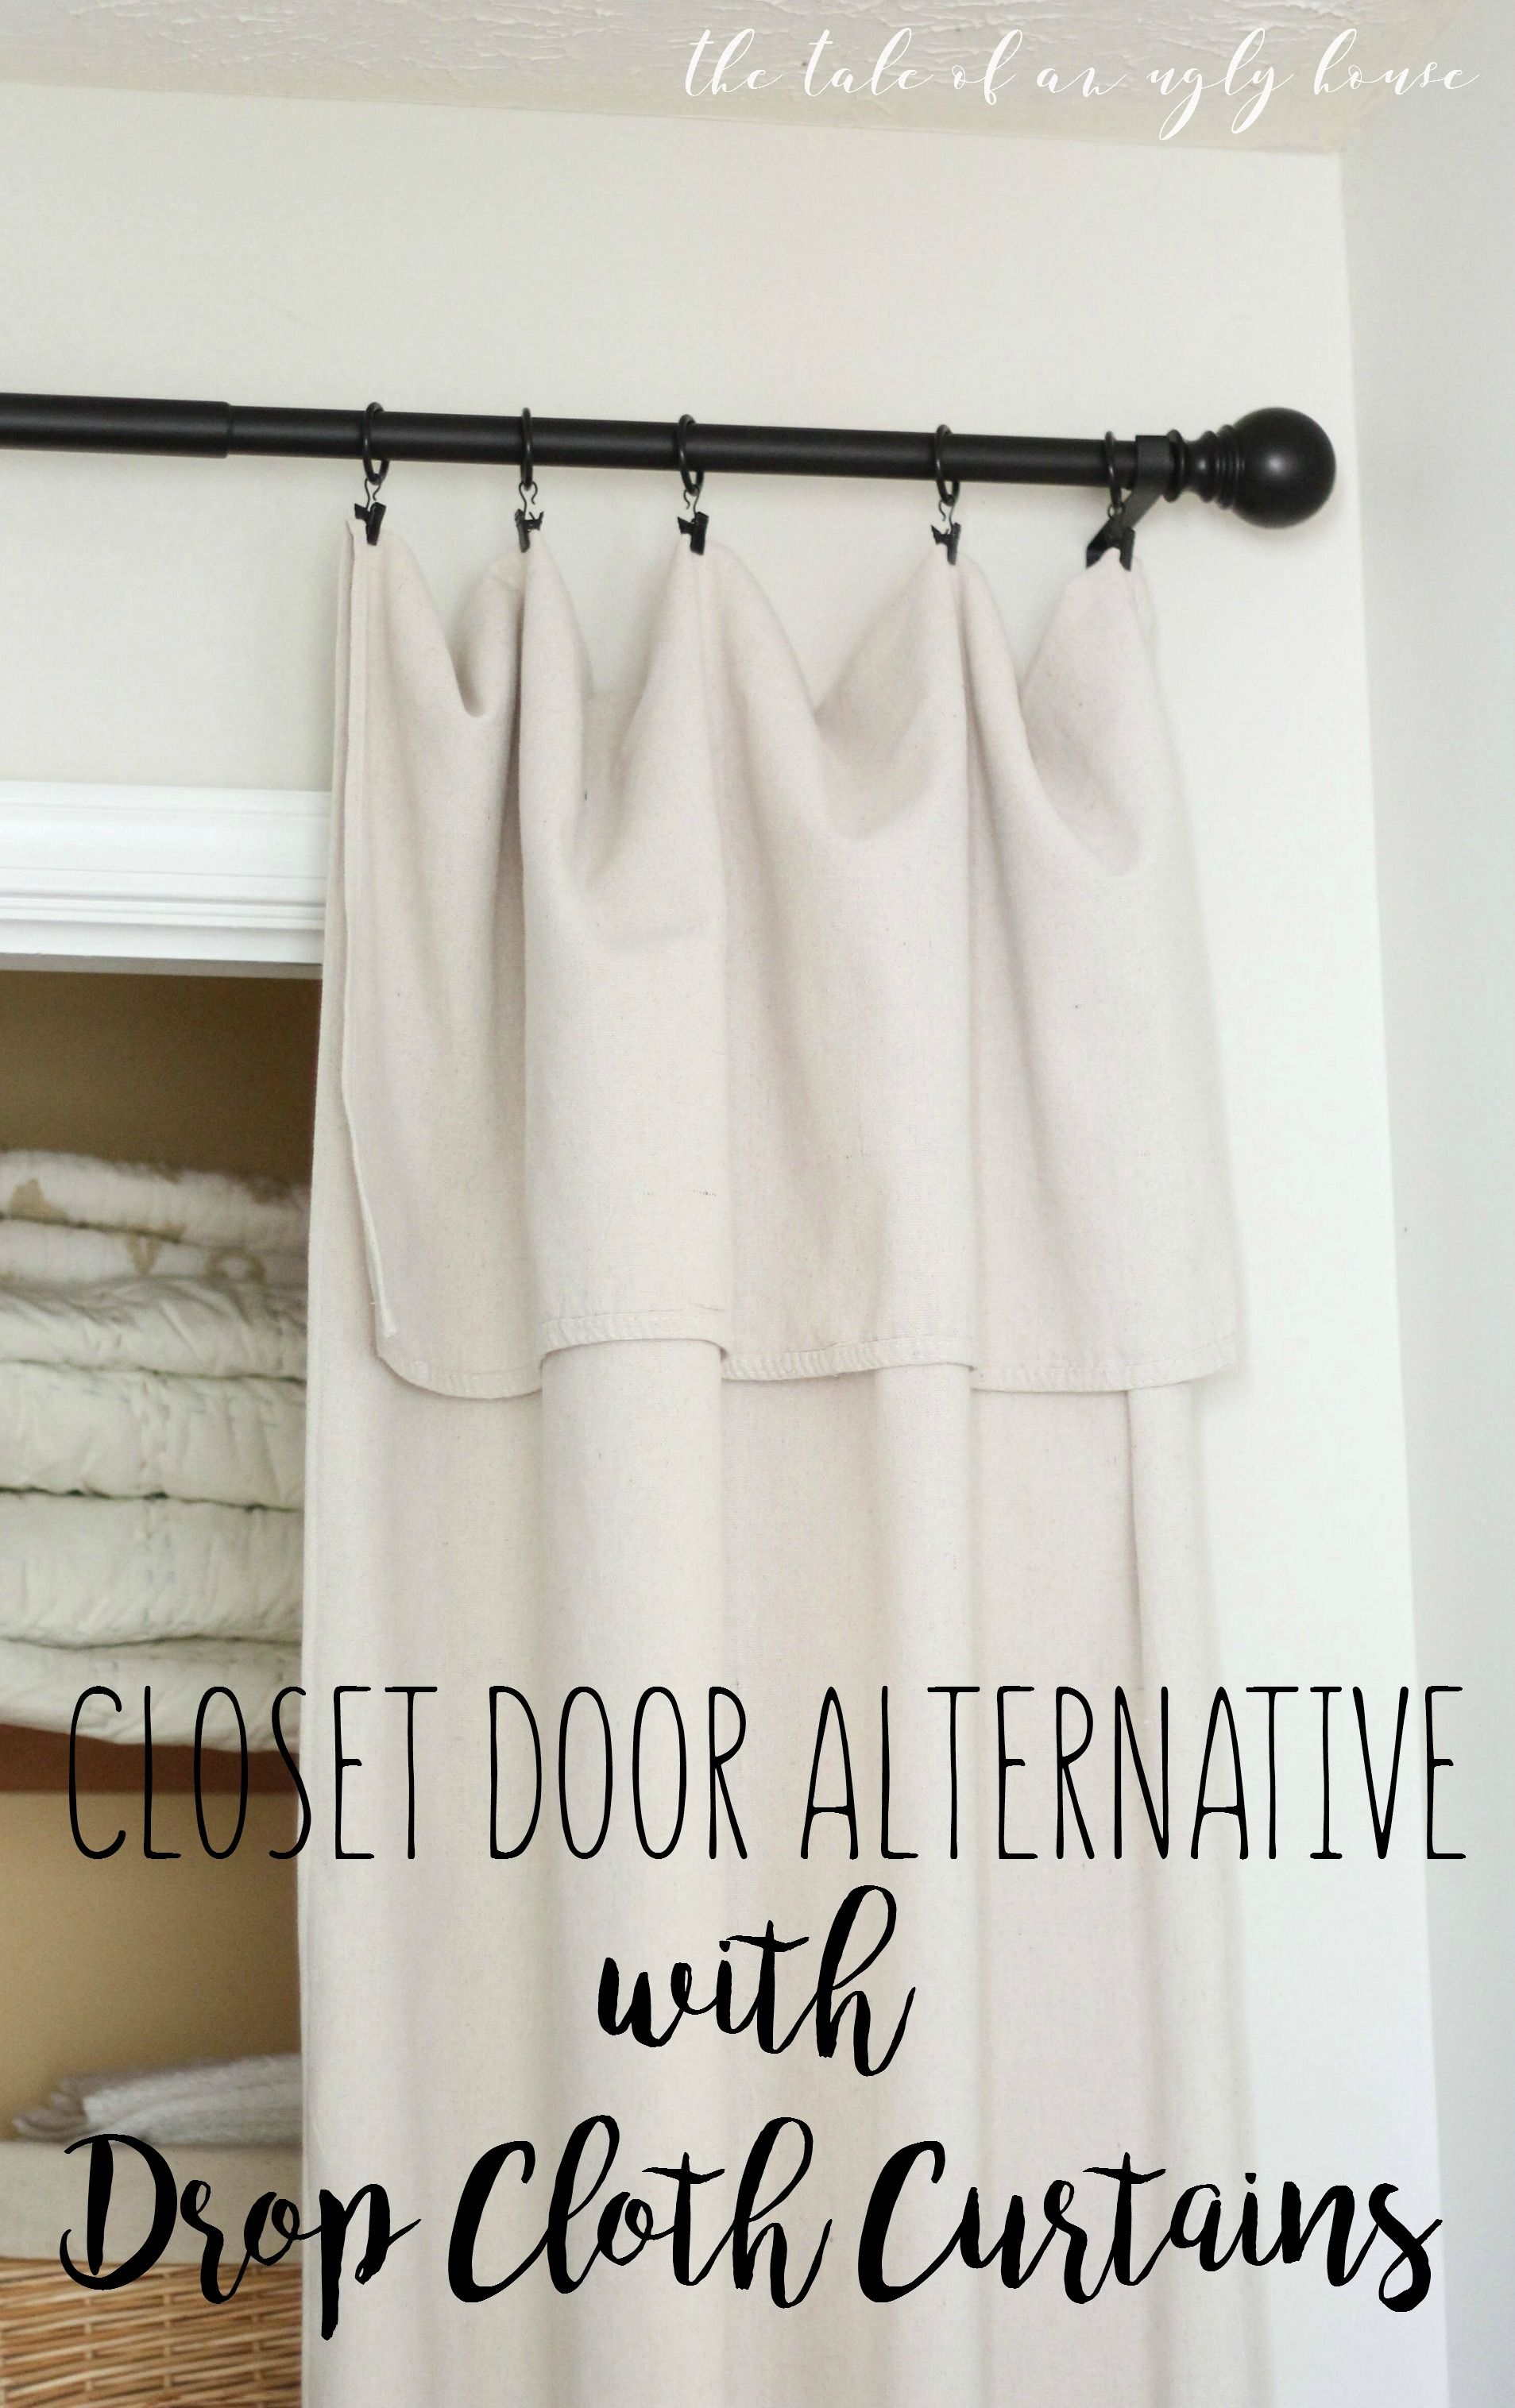 Diy Closet Door Alternative With Drop Cloth Curtains Easy And Super Affordable